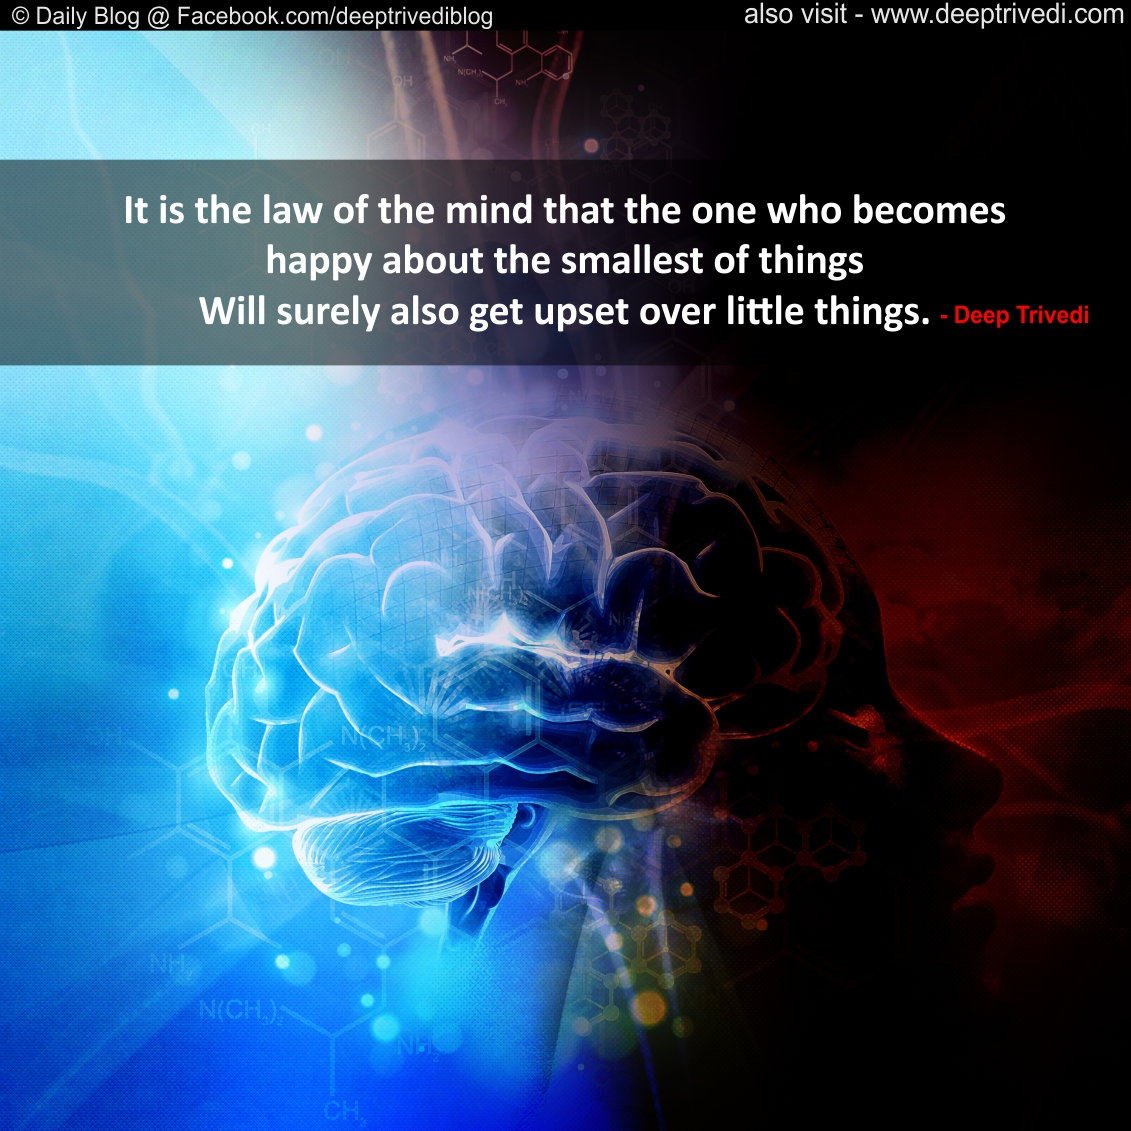 law of the mind